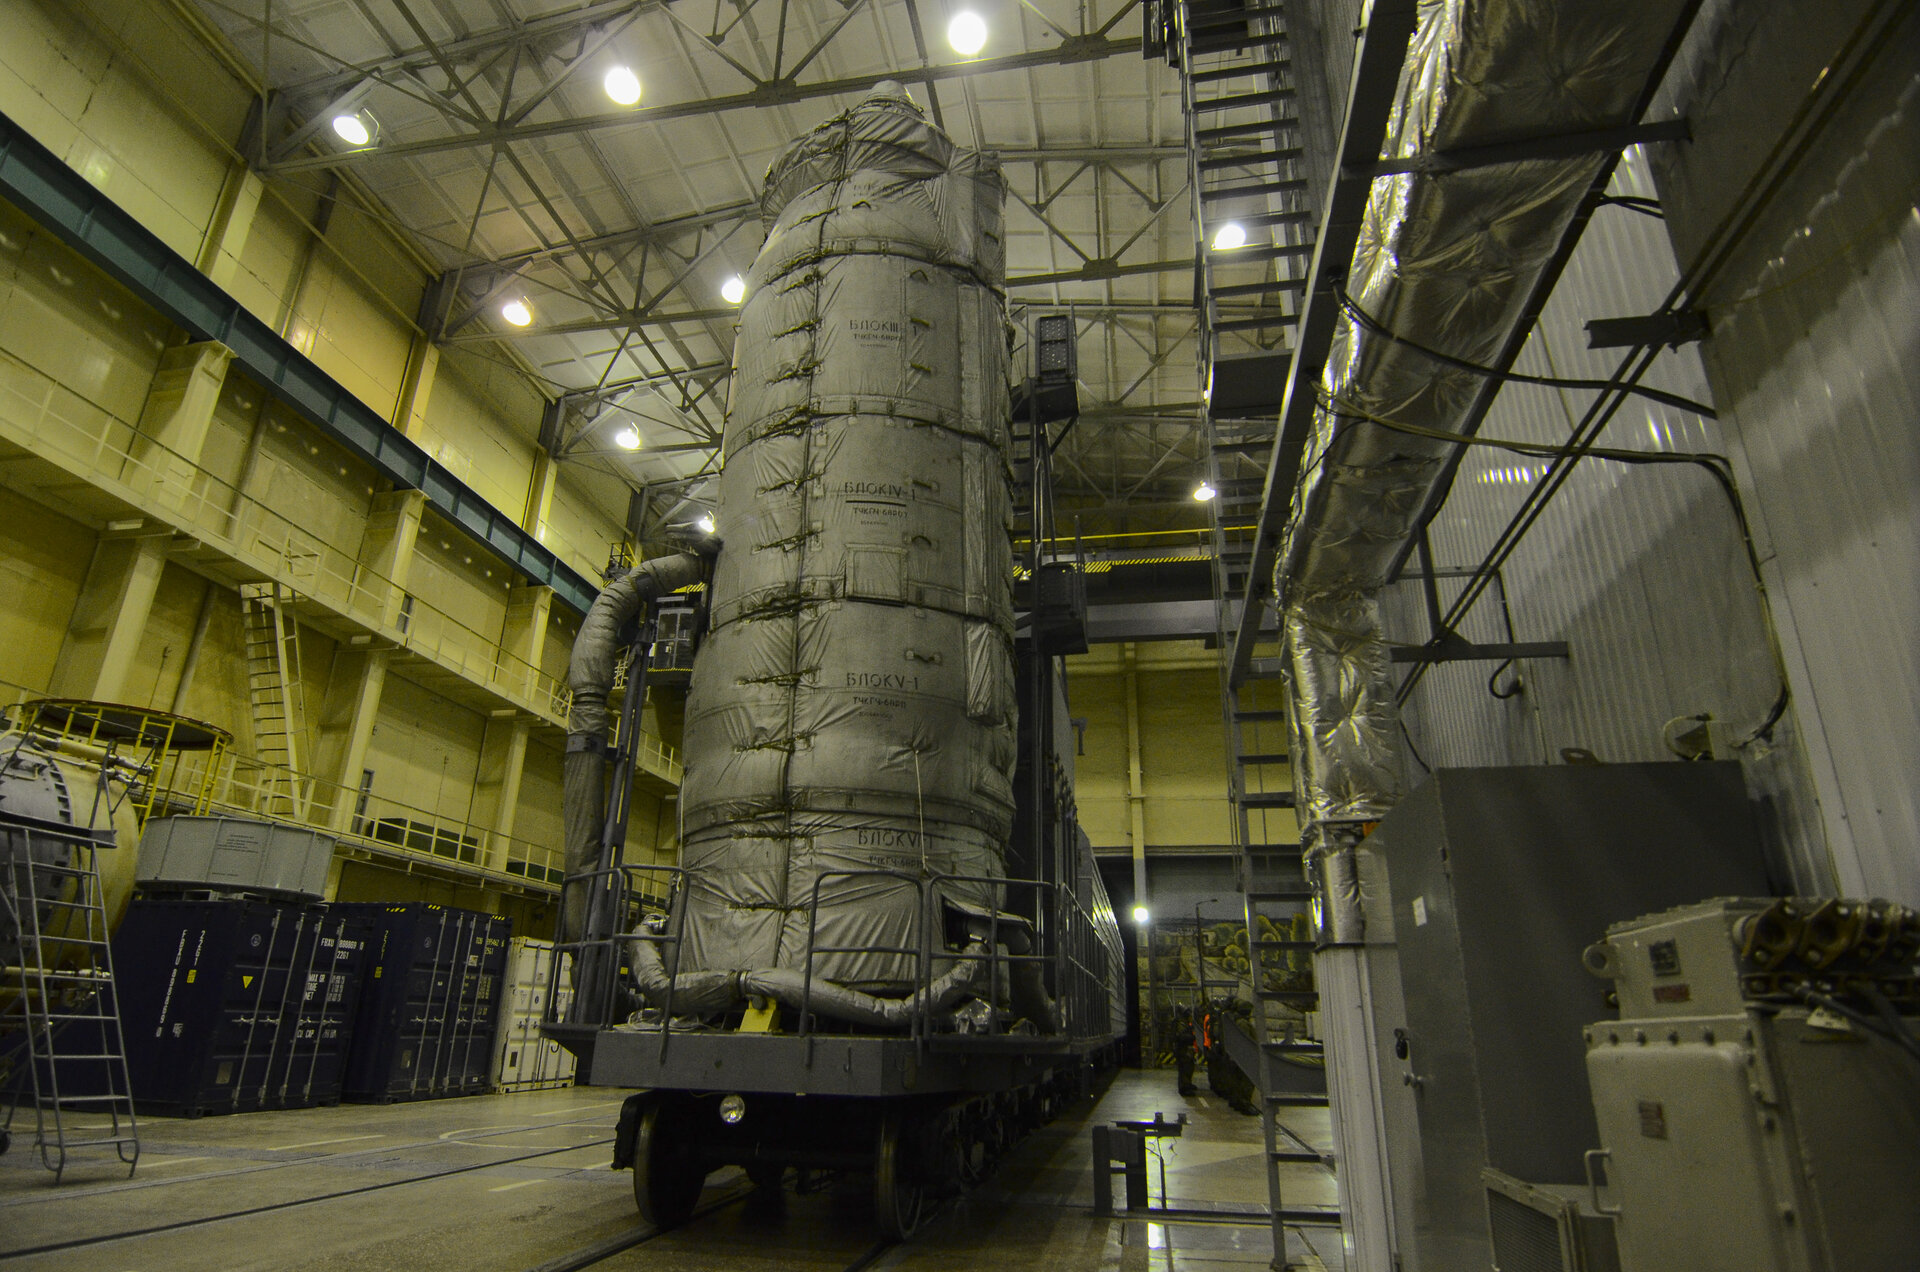 Sentinel-3A upper composite transferred to the launch pad